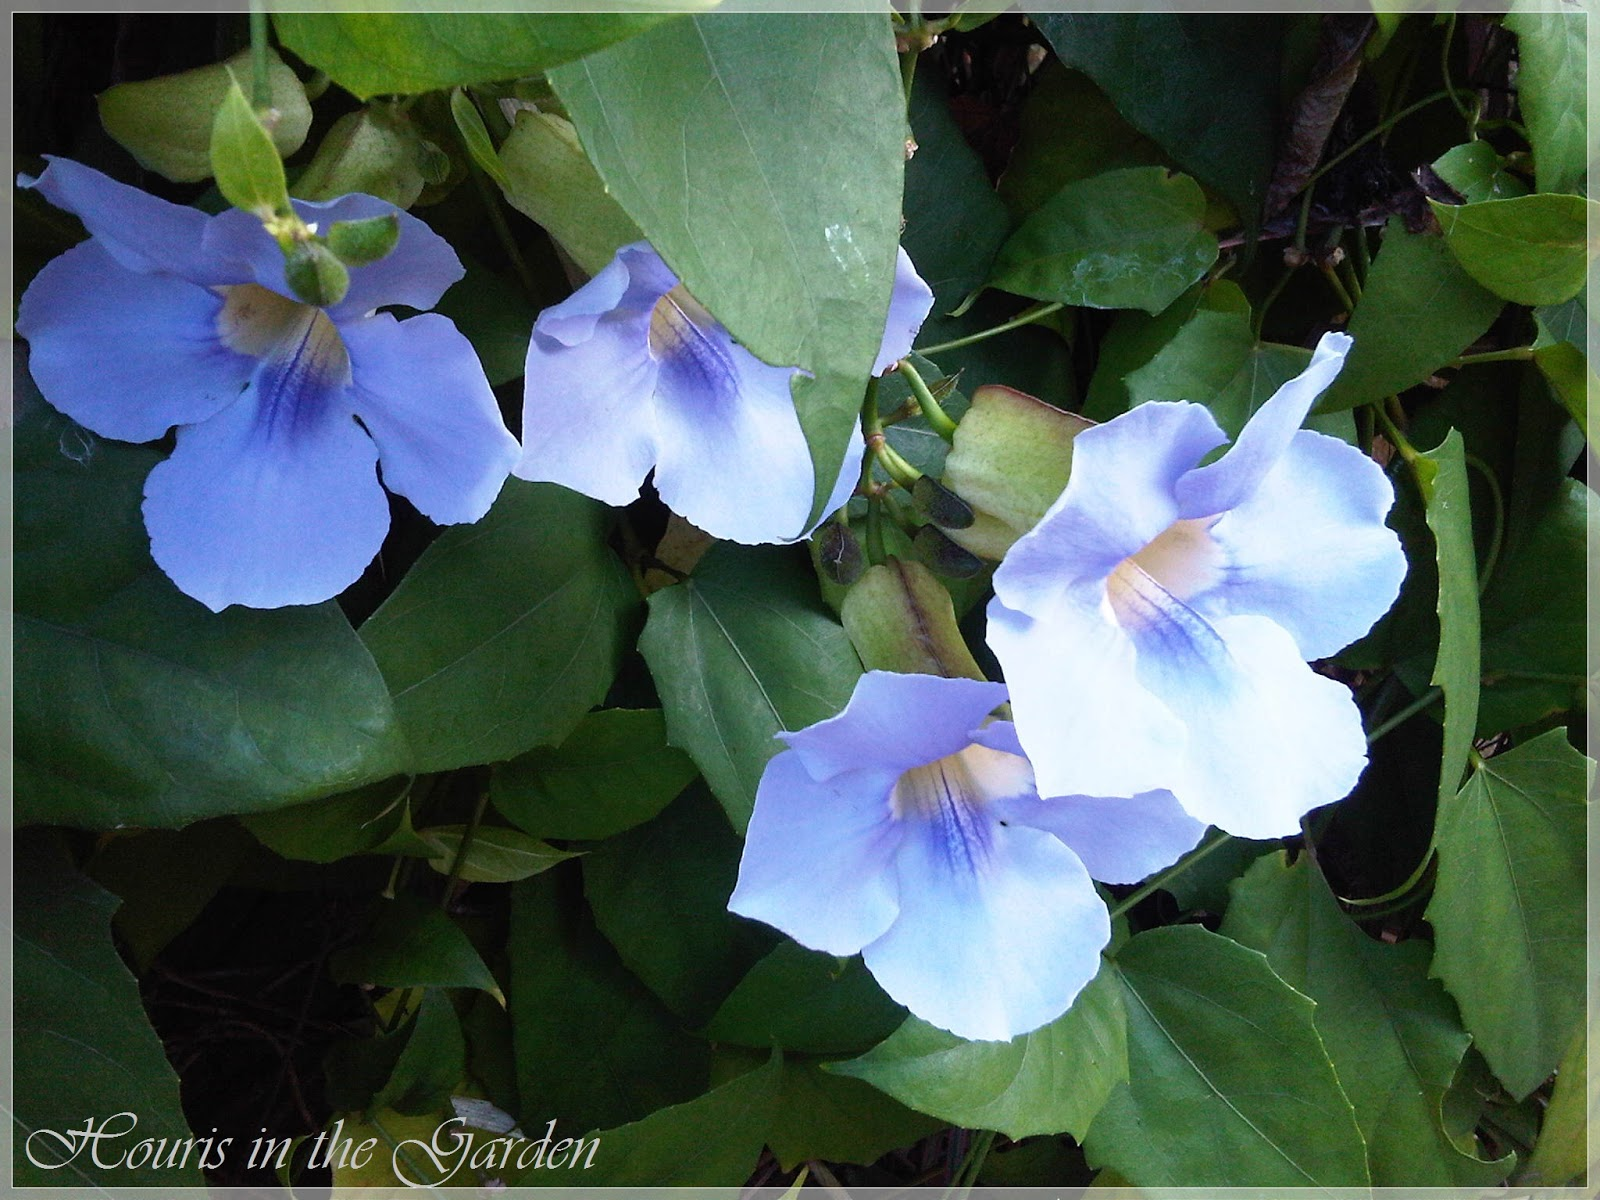 Houris in the garden thunbergia sky vine commonly known as blue sky vine it is scientifically named thunbergia grandiflora this vines are natives of south africa india and asia izmirmasajfo Images